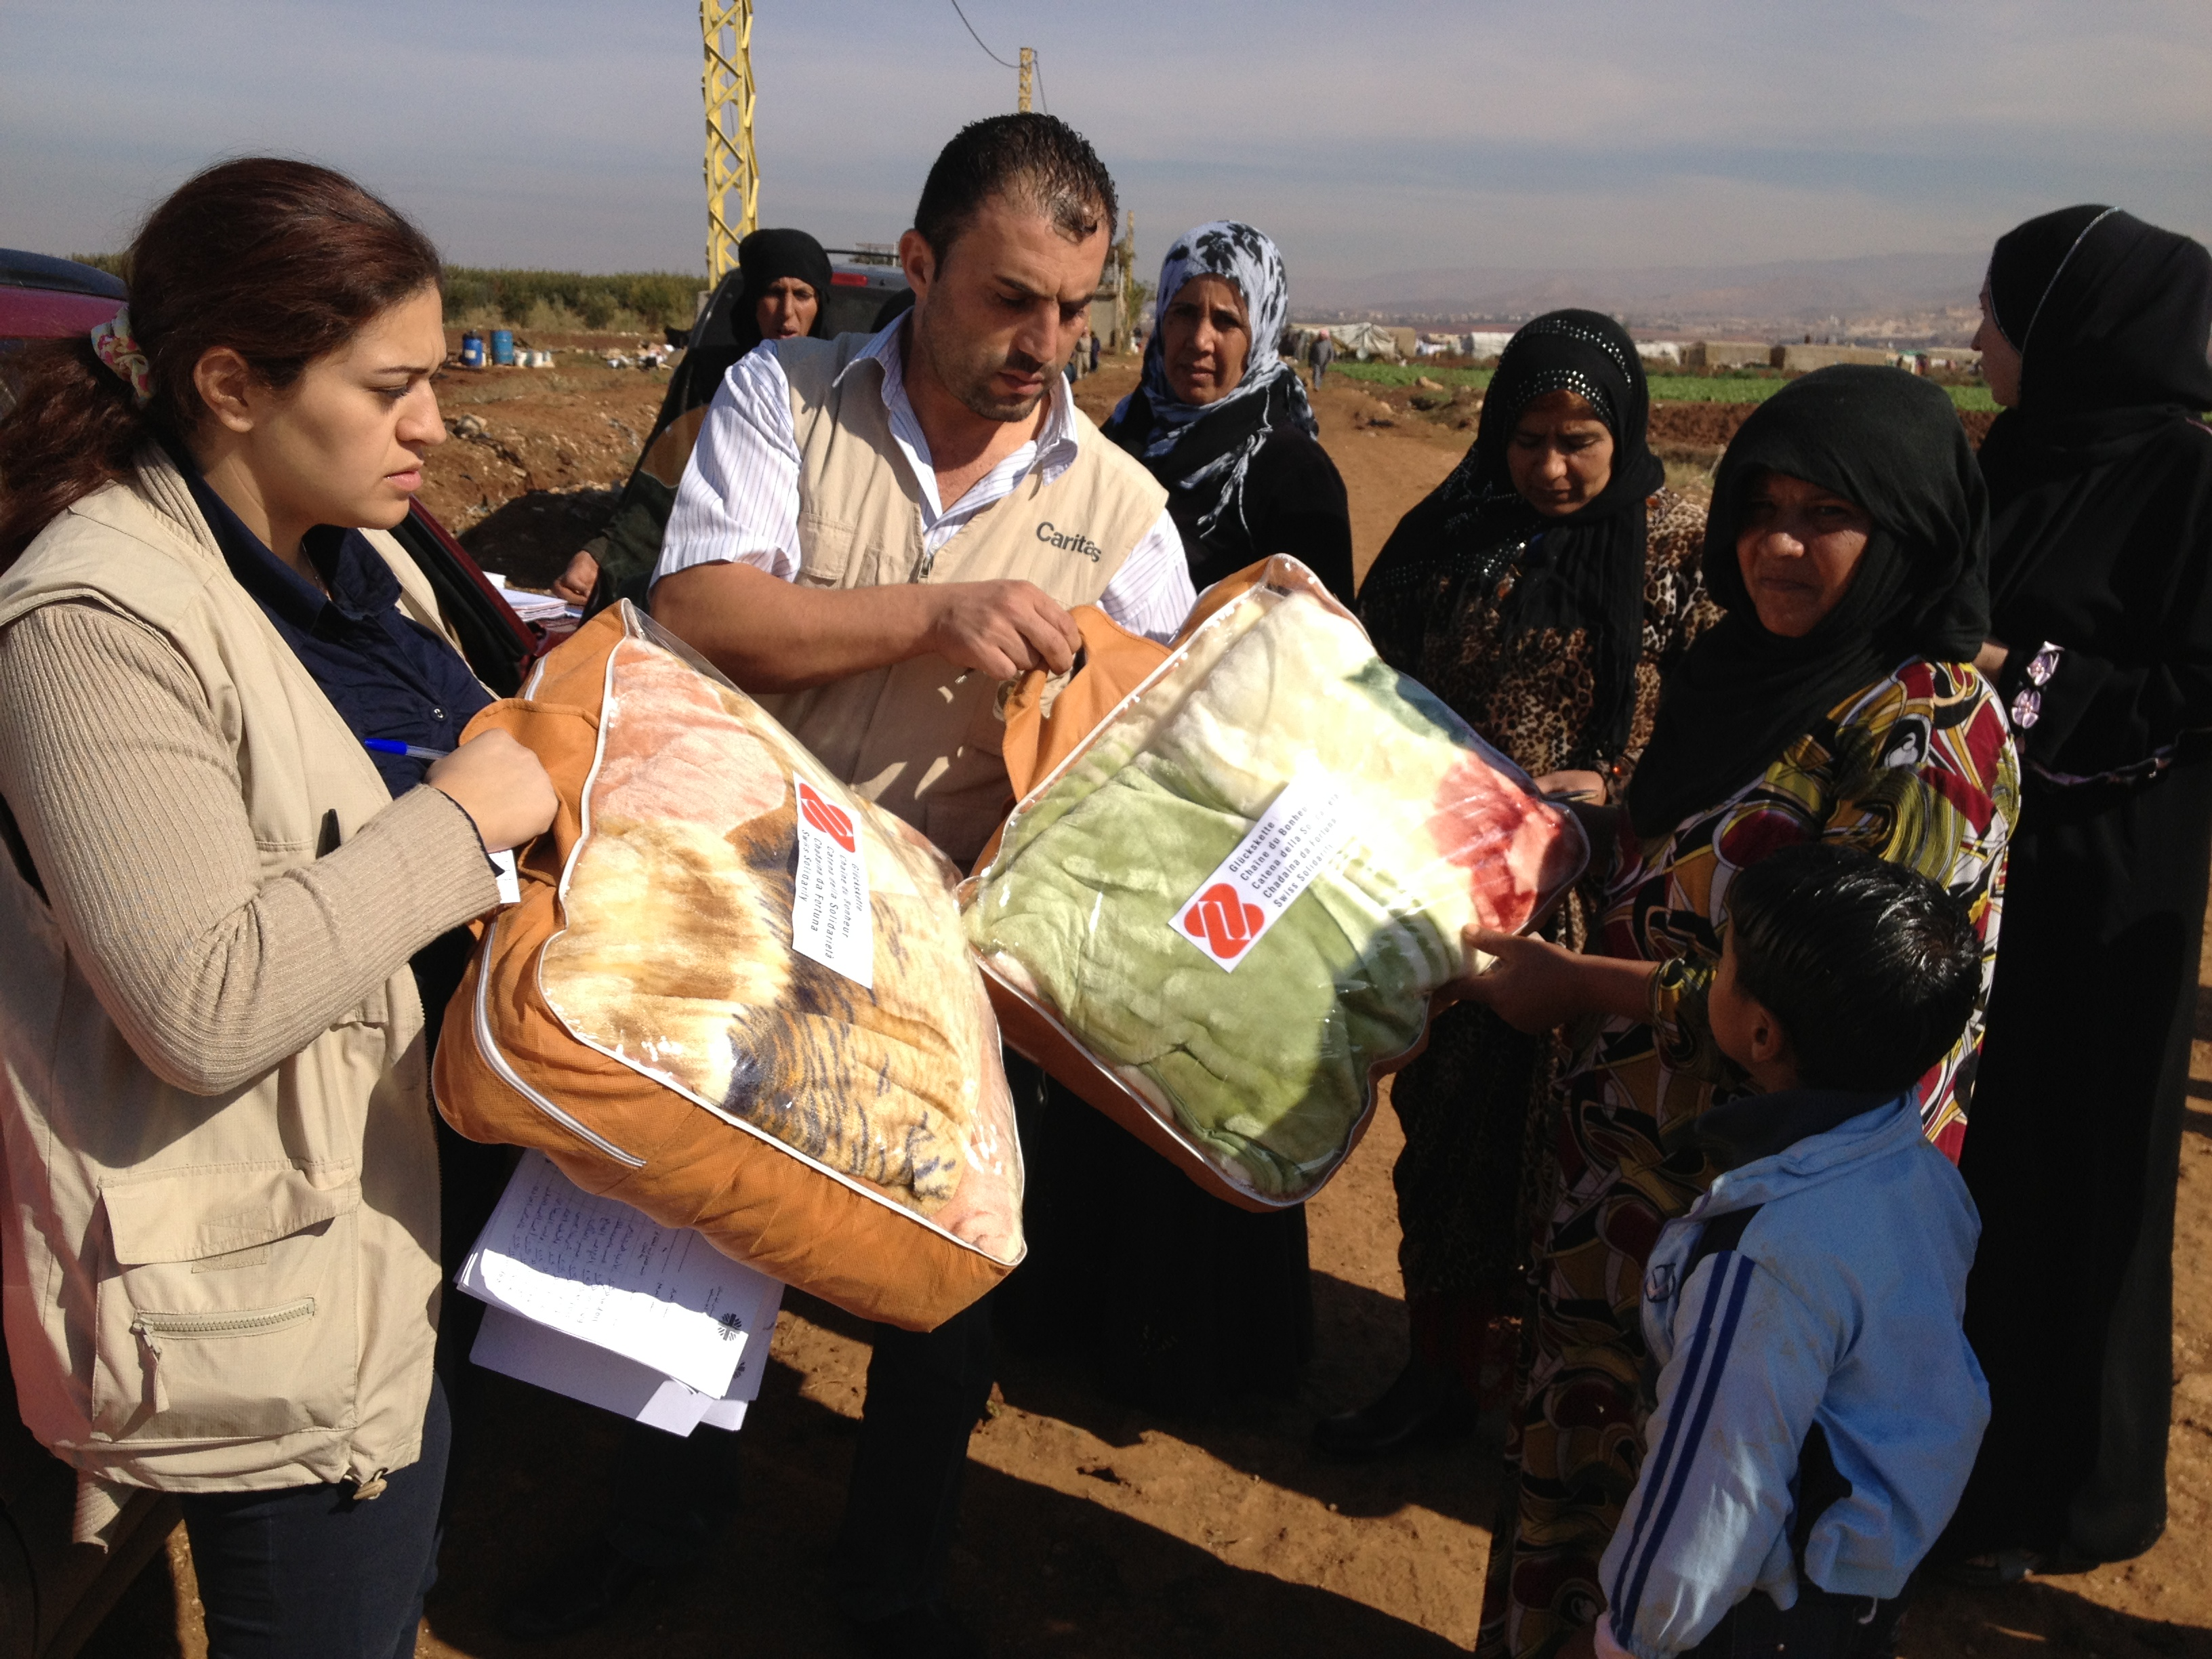 Caritas distributing aid (blankets) to Syrian Refugees facing a cold winter in the Bekaa Valley, Lebanon November 11th, 2012